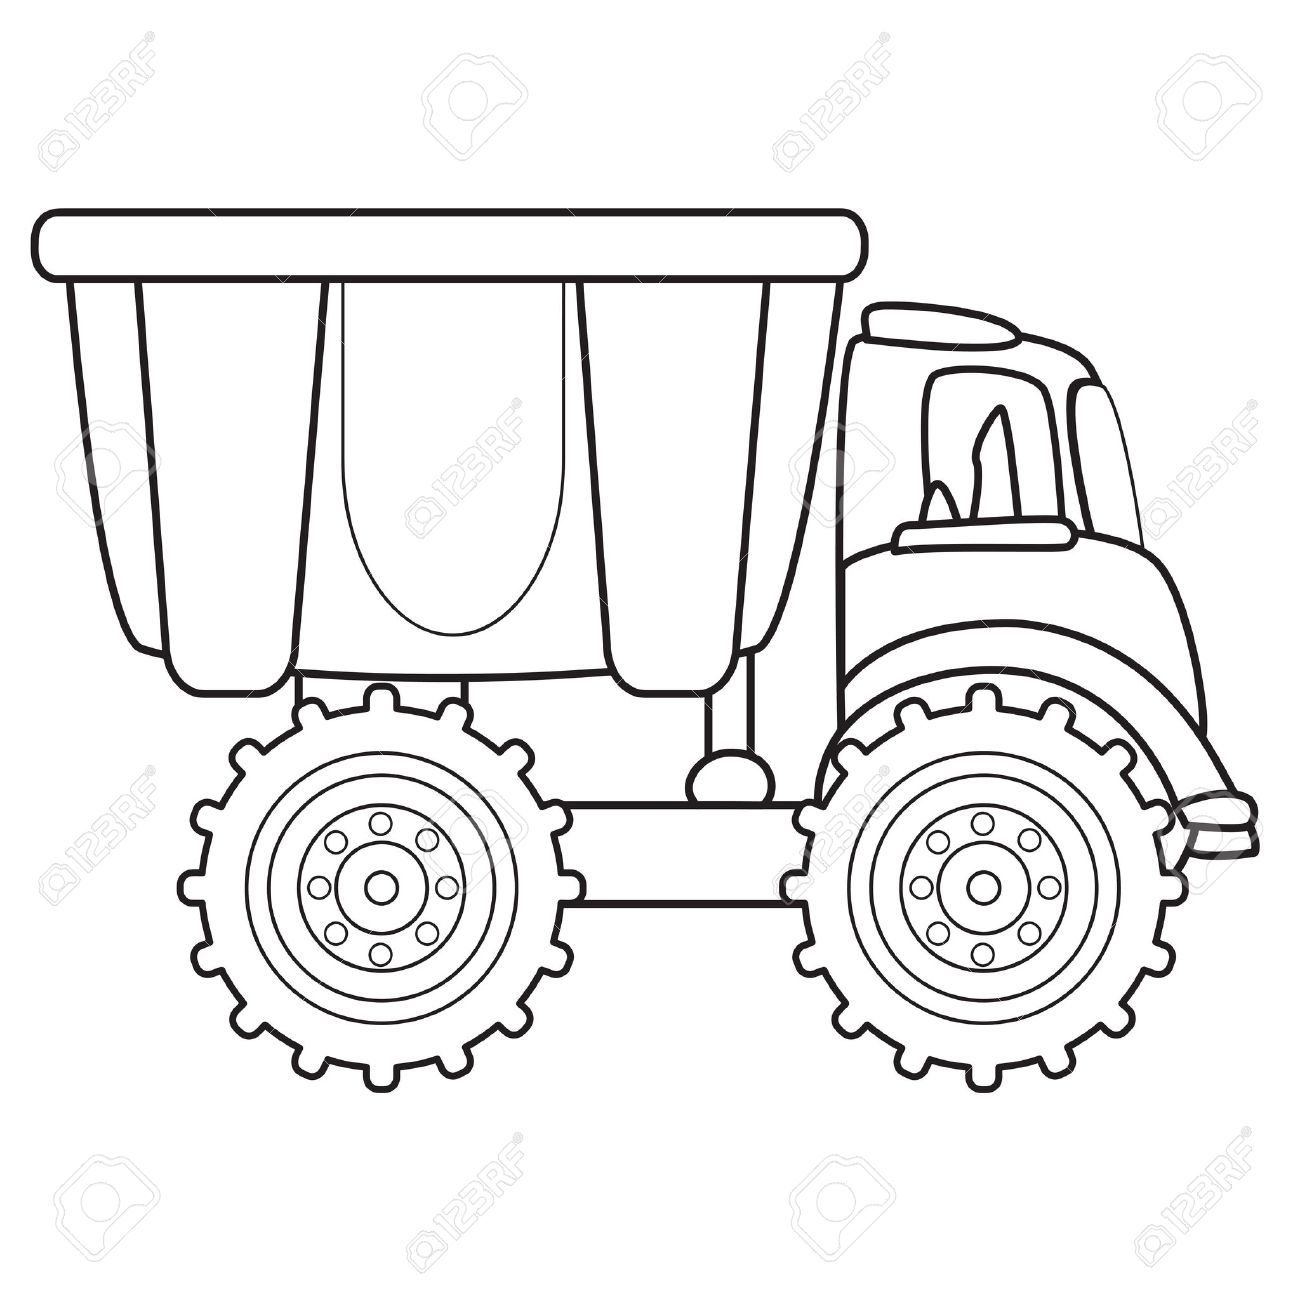 2 835 trash truck stock vector illustration and royalty free trash